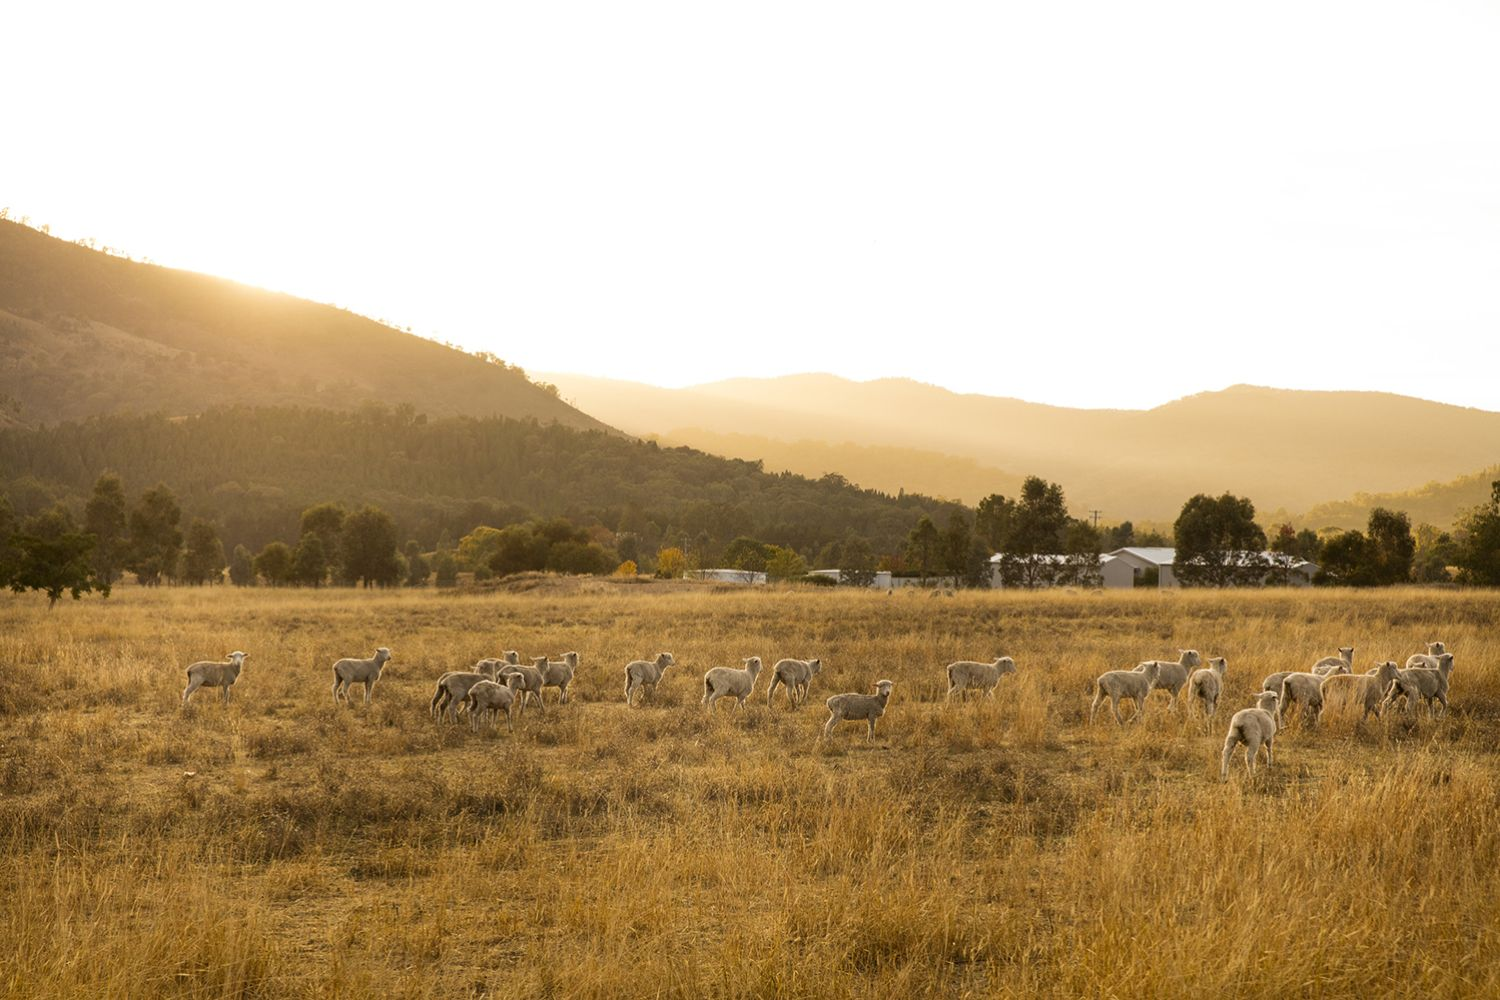 Sheep grazing, Mudgee in Country NSW